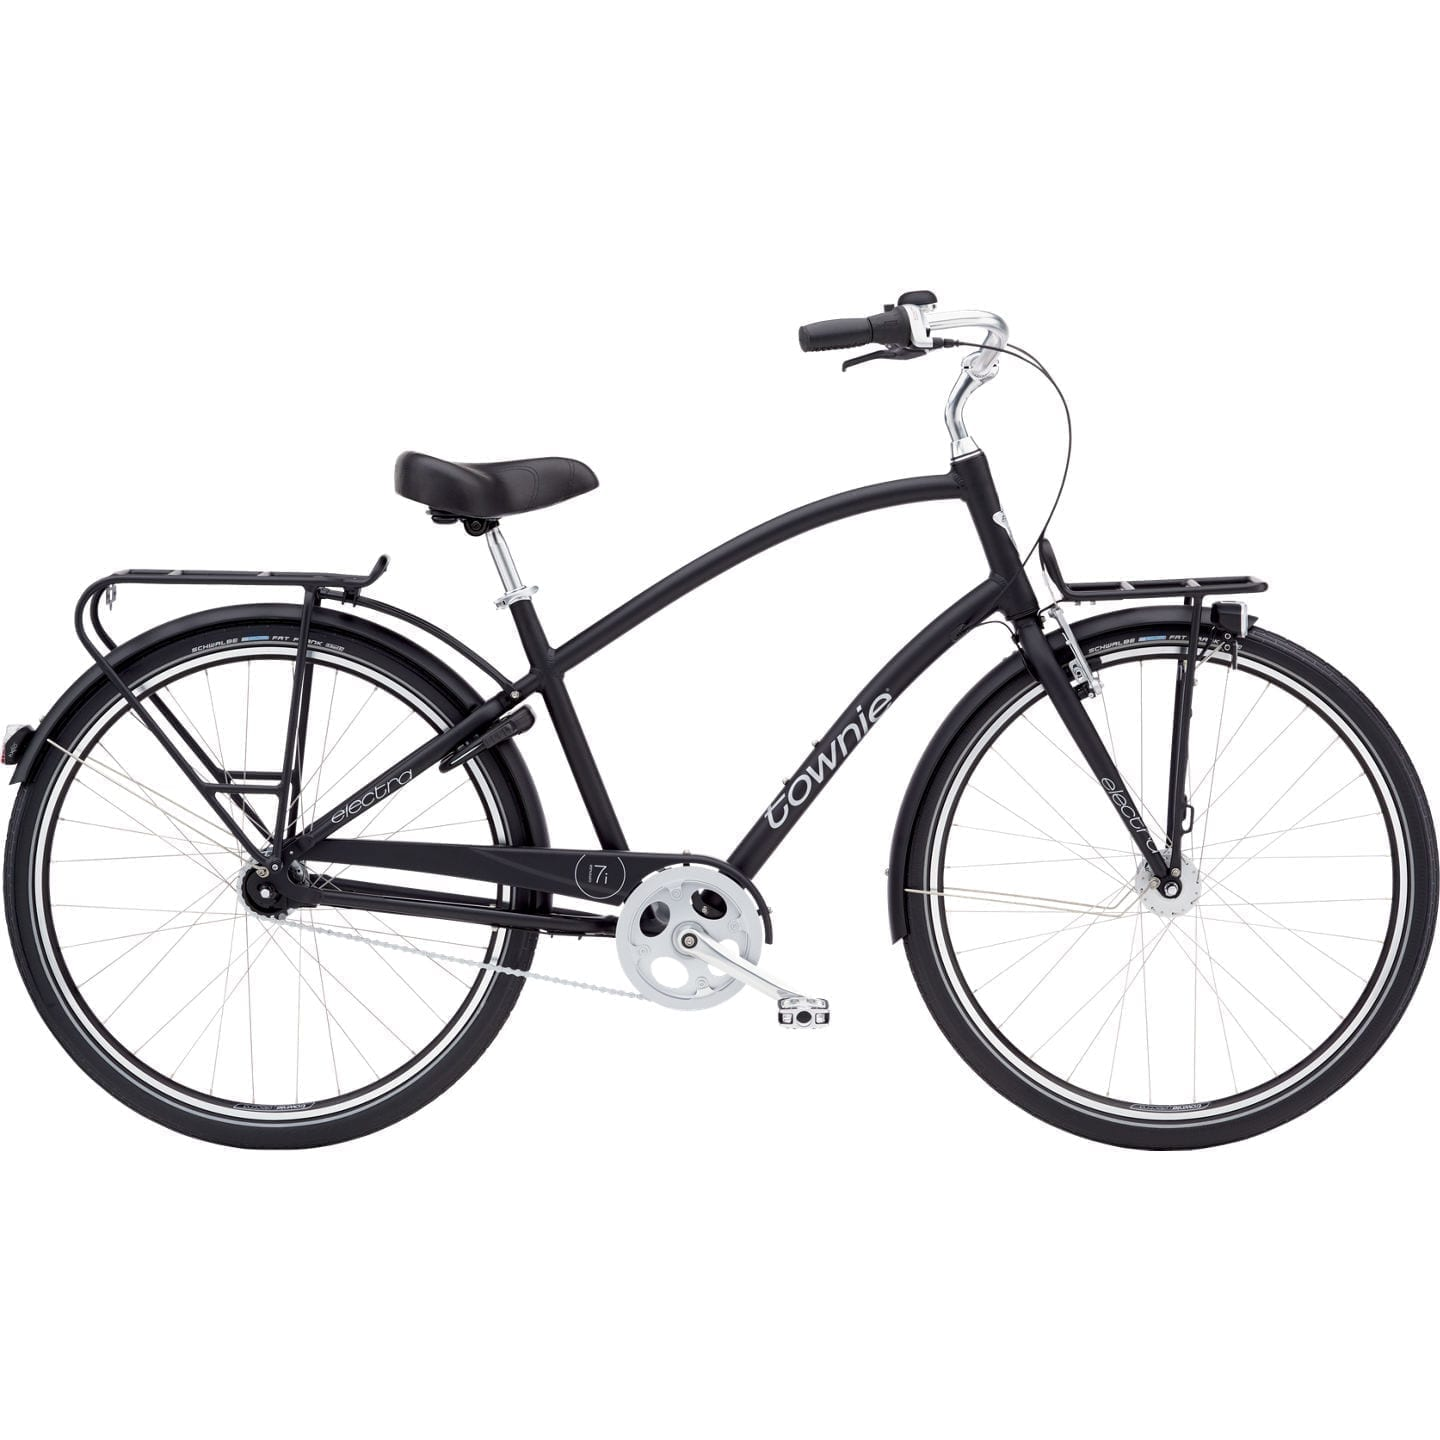 Electra Townie Commute 7i EQ - Musta